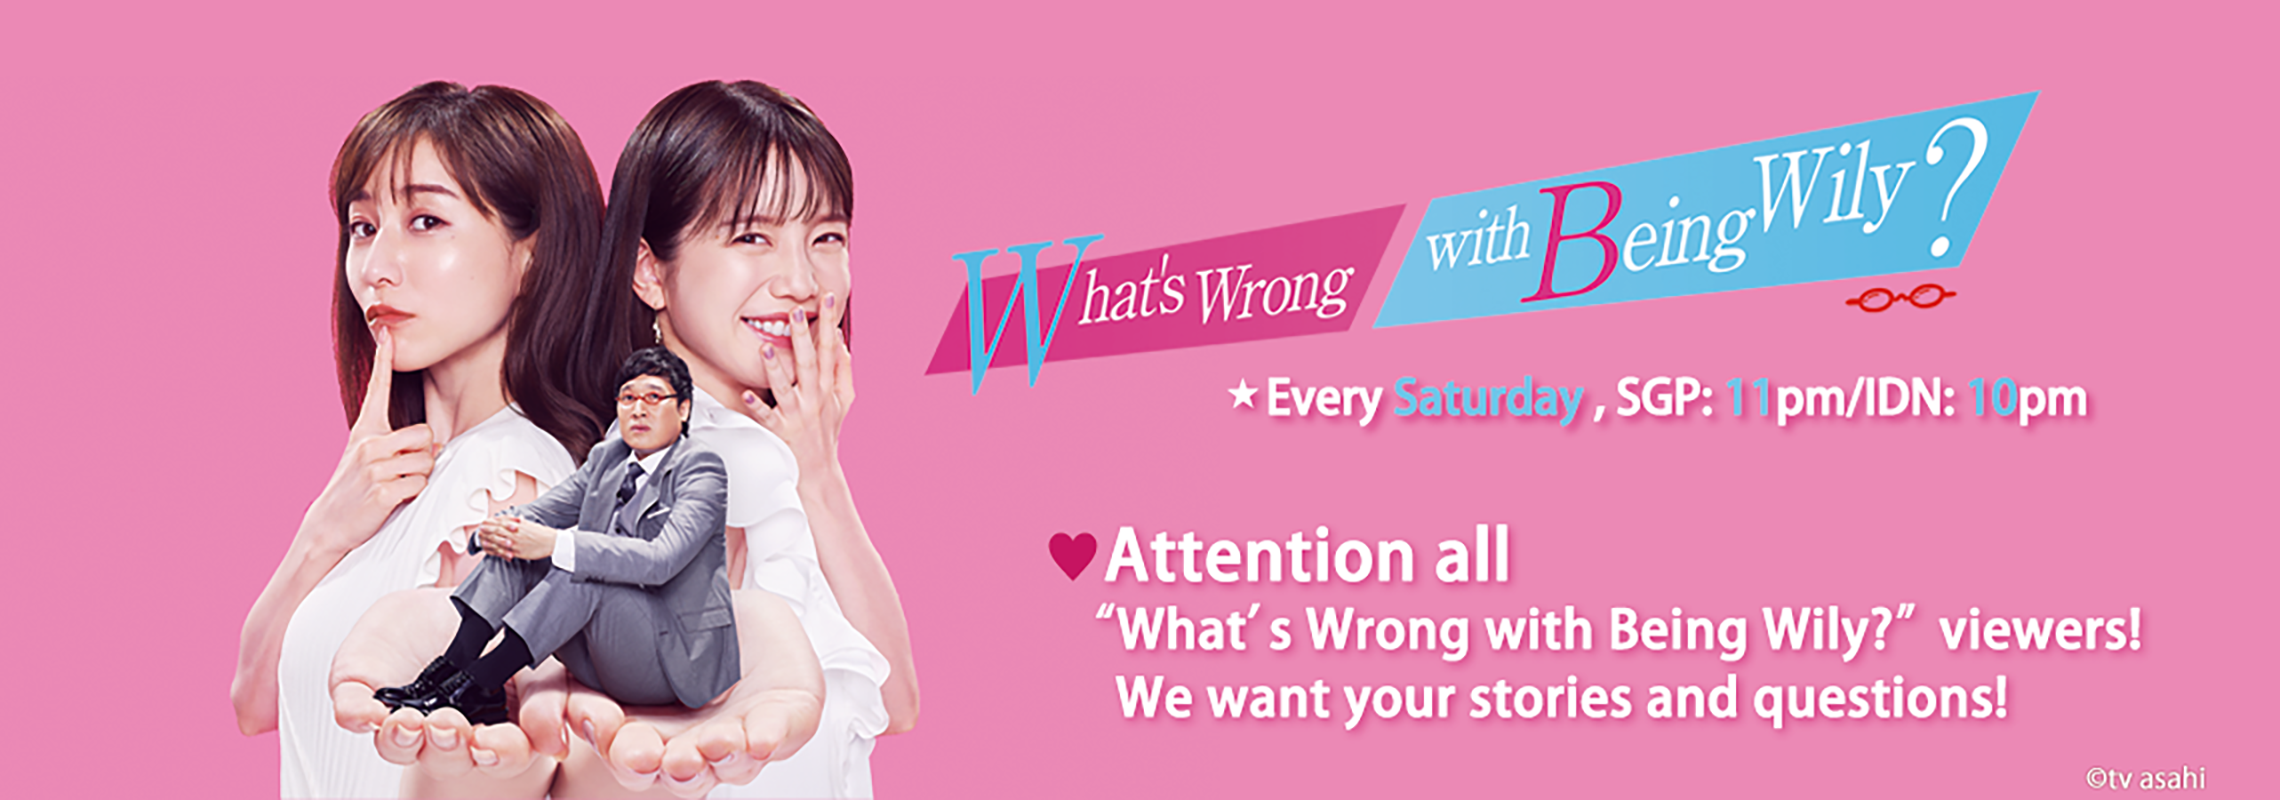 "Attention all ""What's Wrong with Being Wily?"" viewers! We want your stories and questions!"